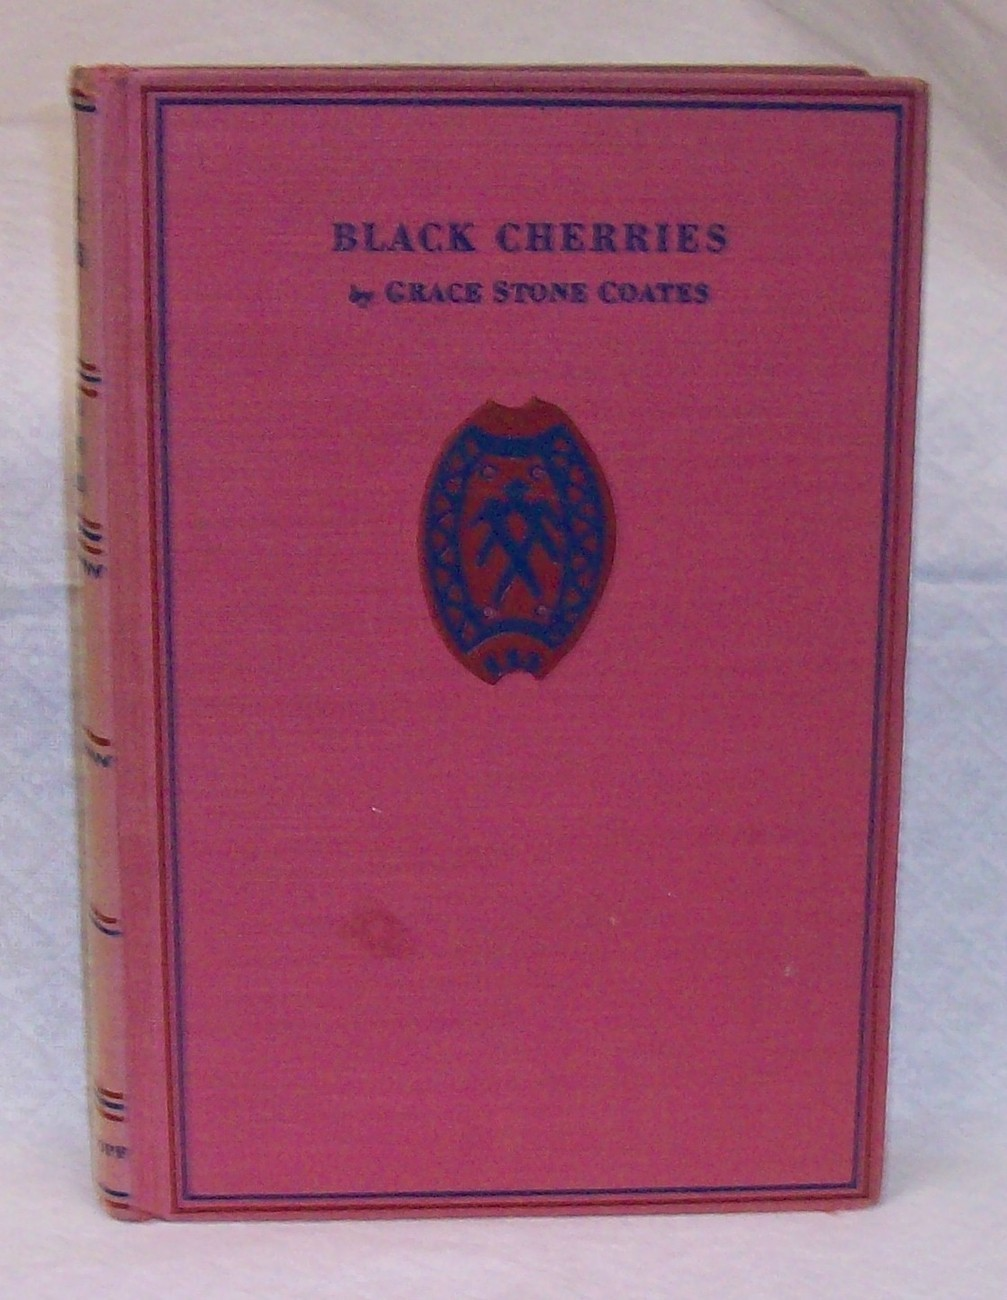 Black Cherries by Grace S. Coats Bonanza